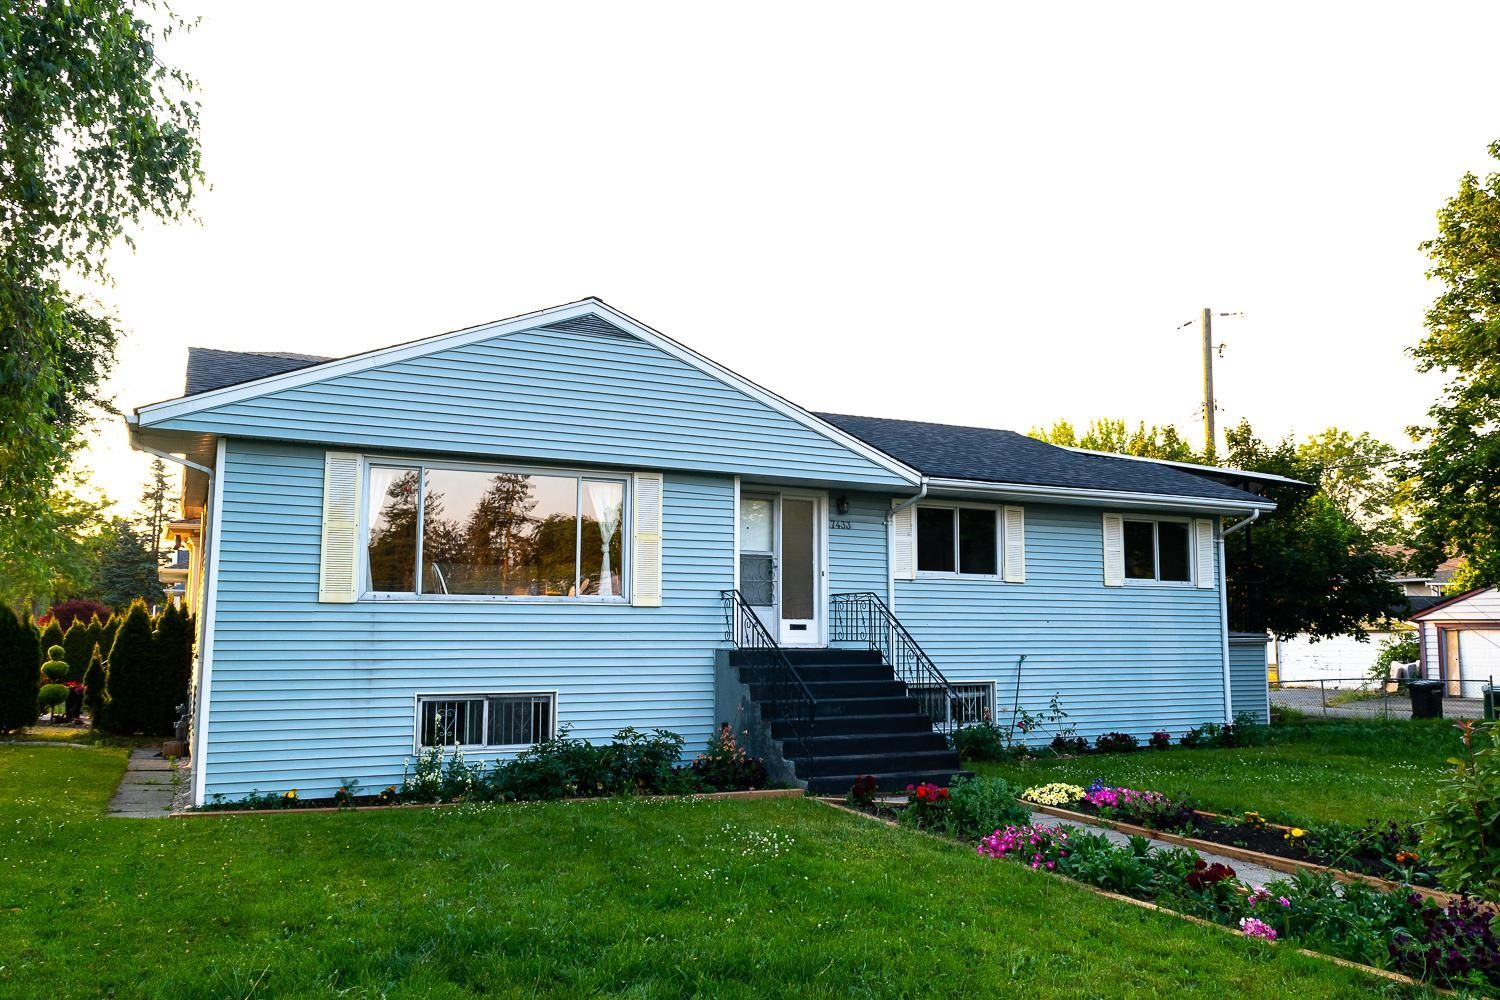 Main Photo: 7433 ELWELL Street in Burnaby: Highgate House for sale (Burnaby South)  : MLS®# R2616869